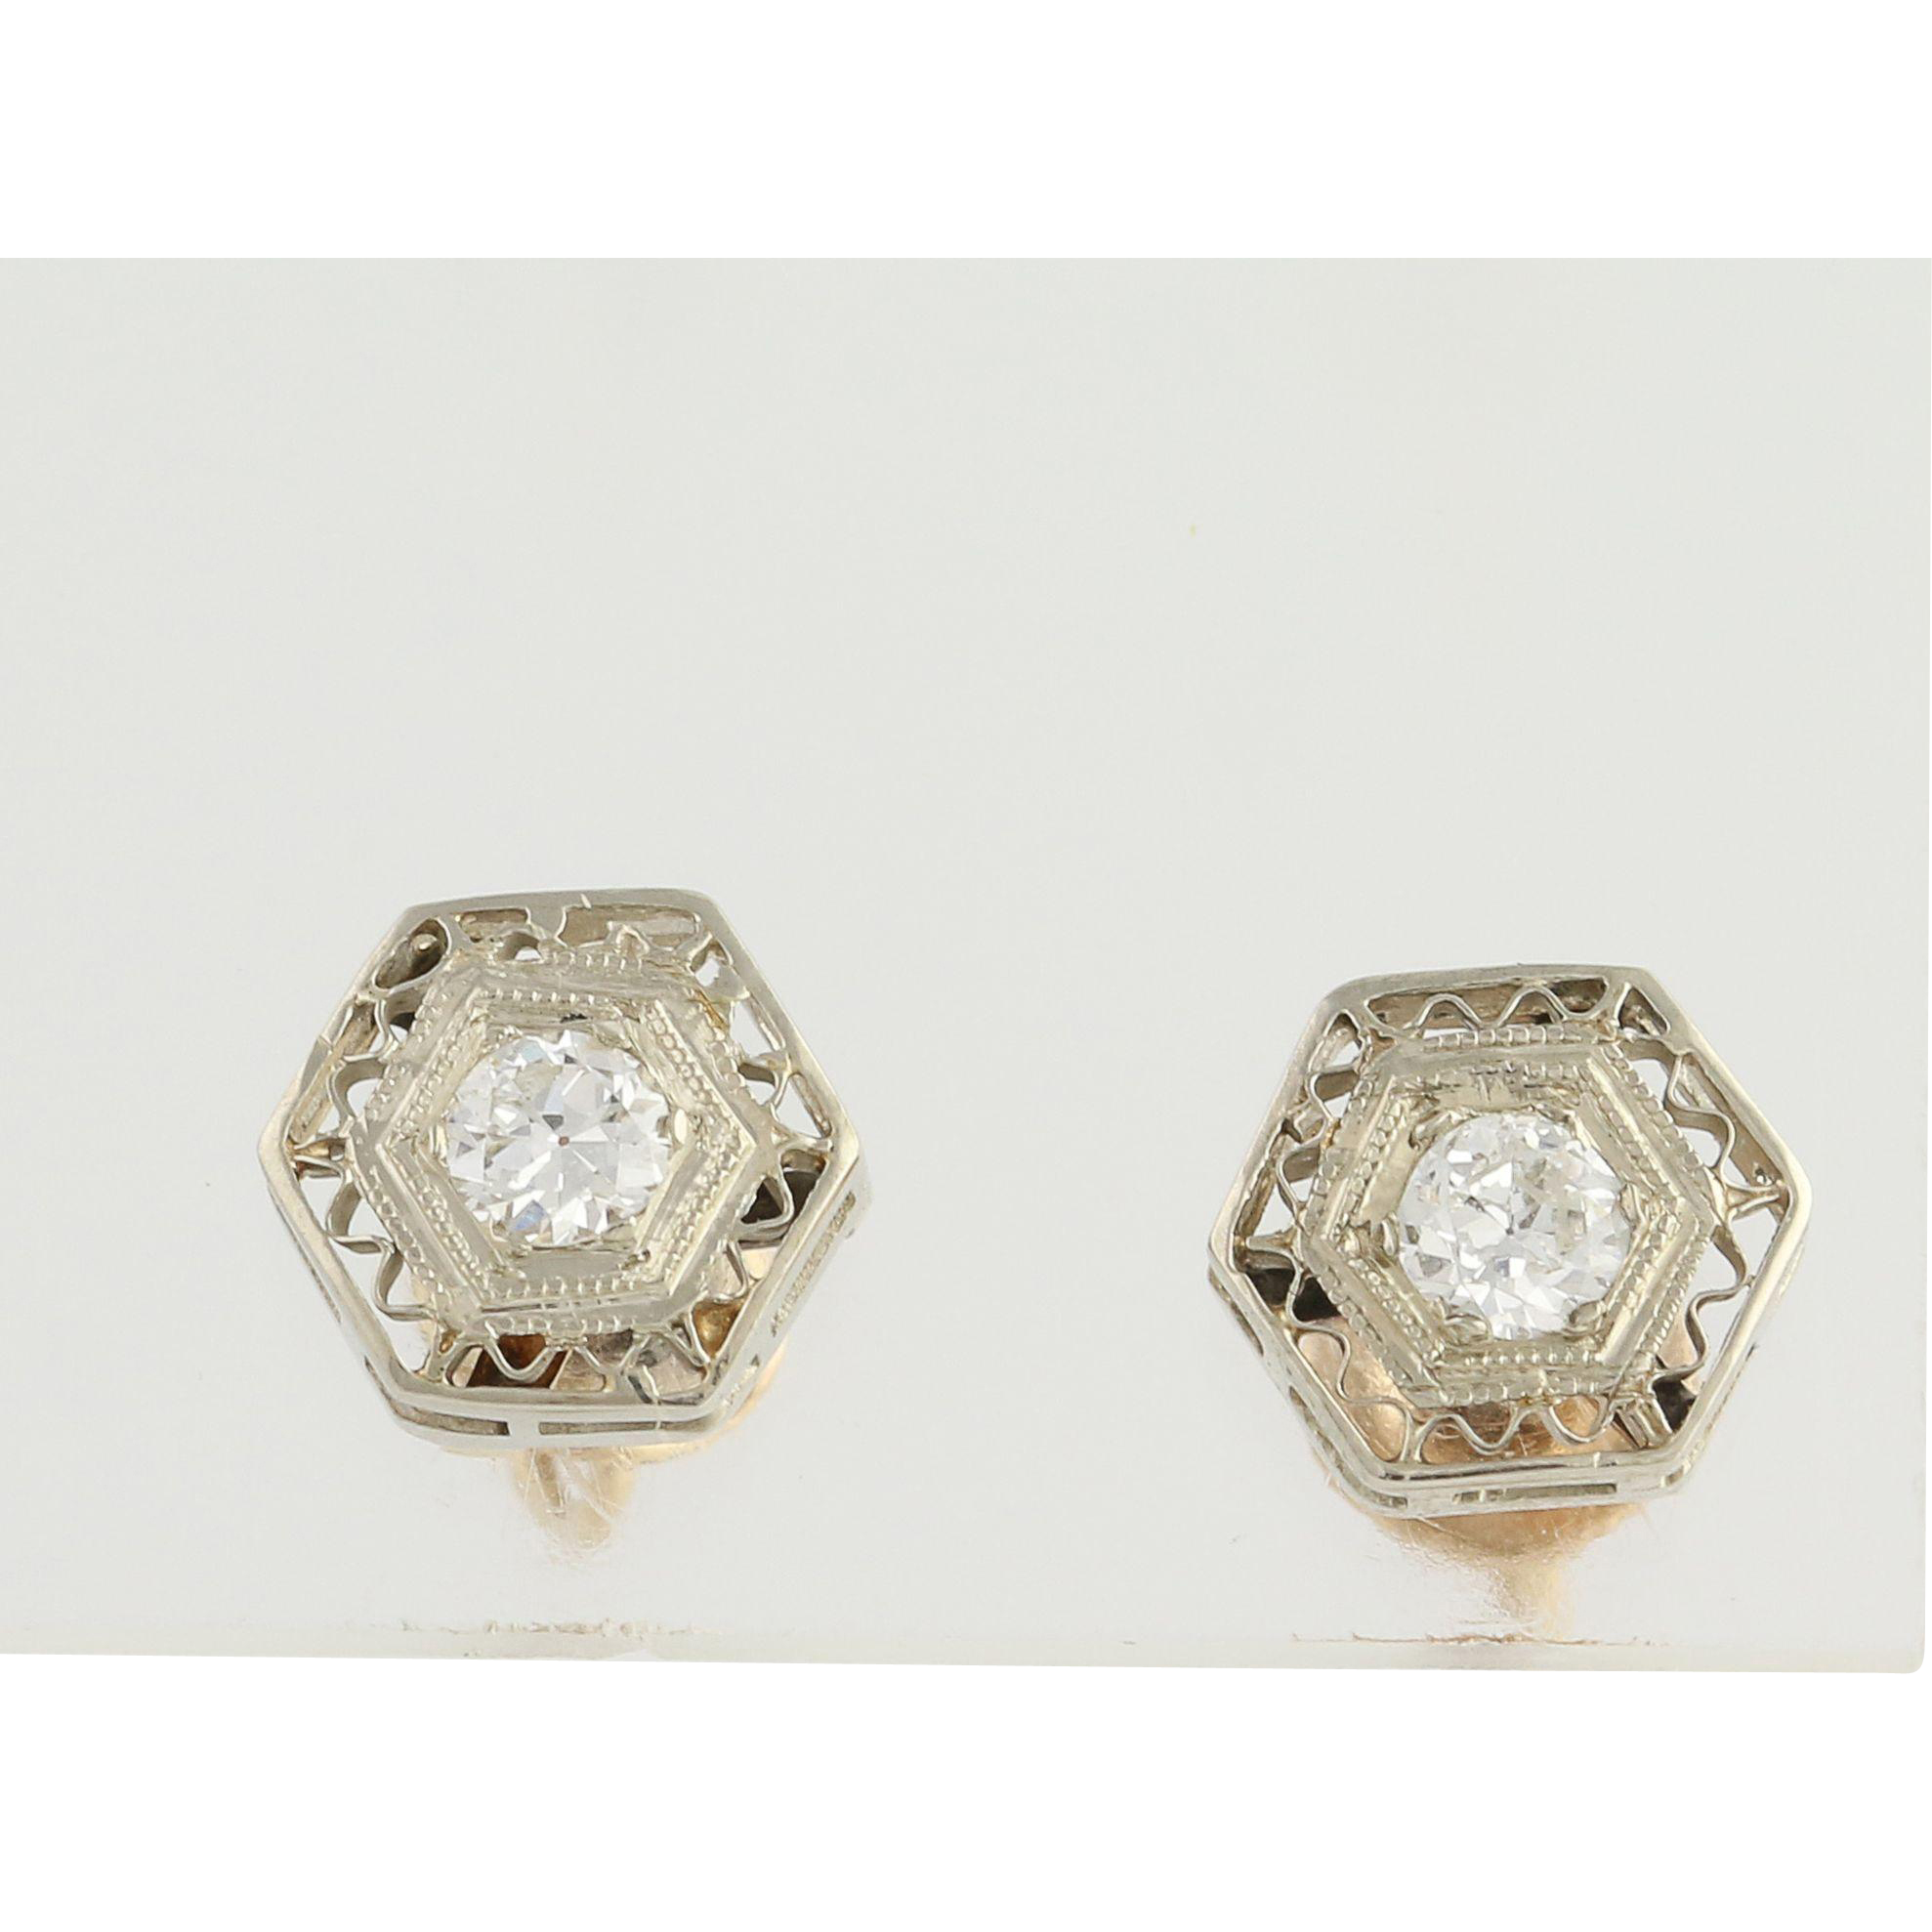 Art Deco Diamond Stud Earrings - 14k Yellow & White Gold Screw-On Backs .32ctw